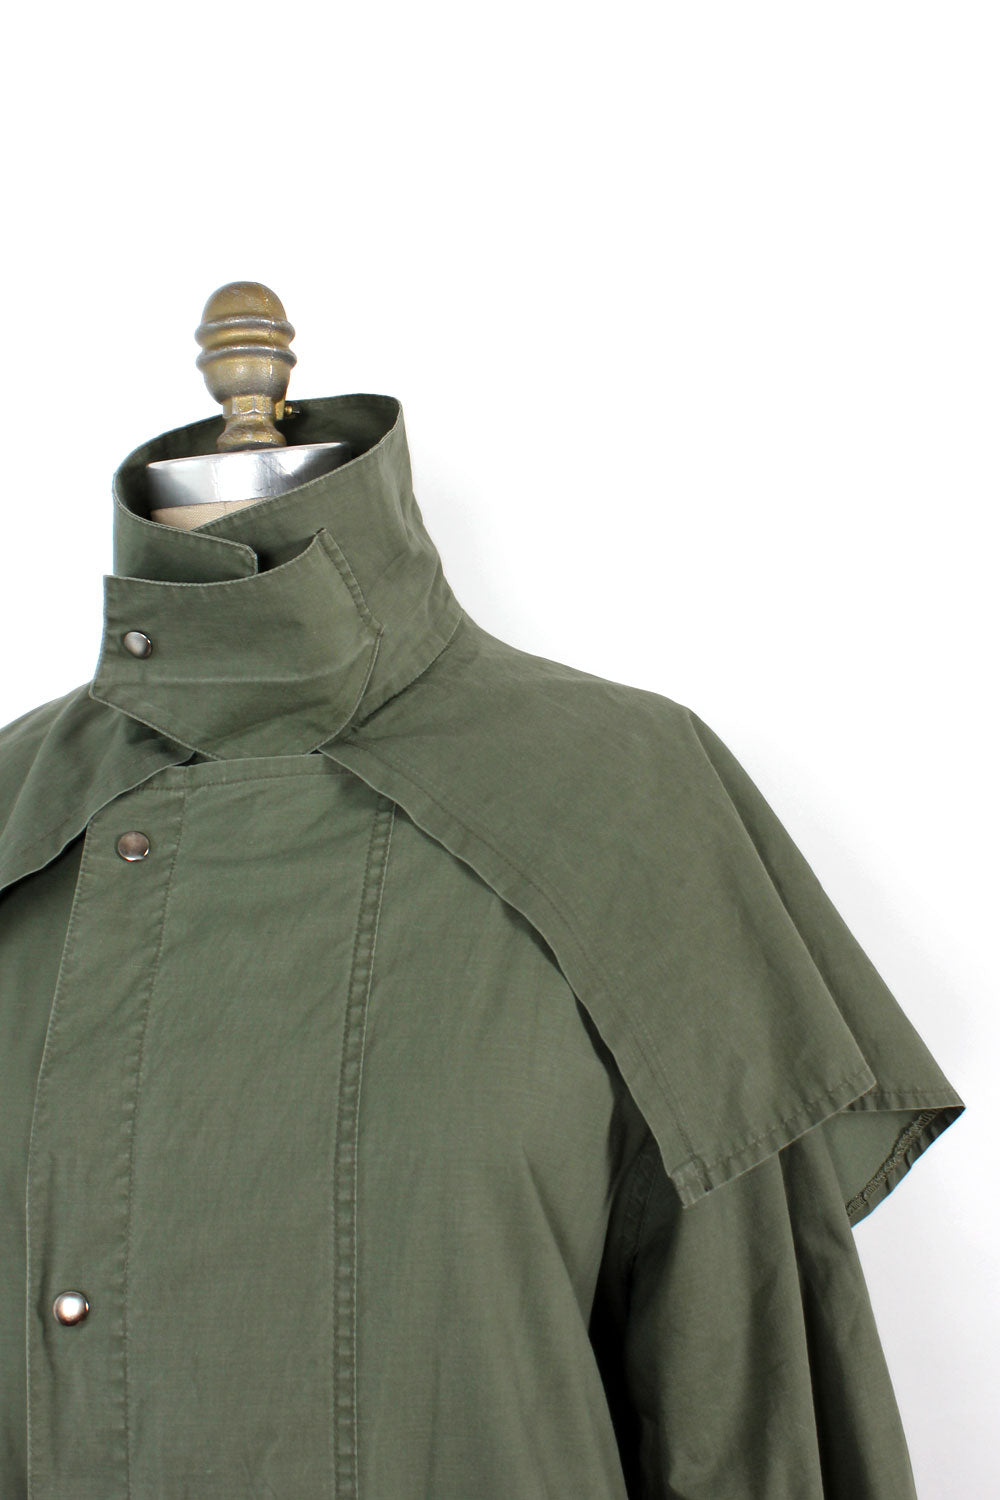 Australian Outback Trench S/M